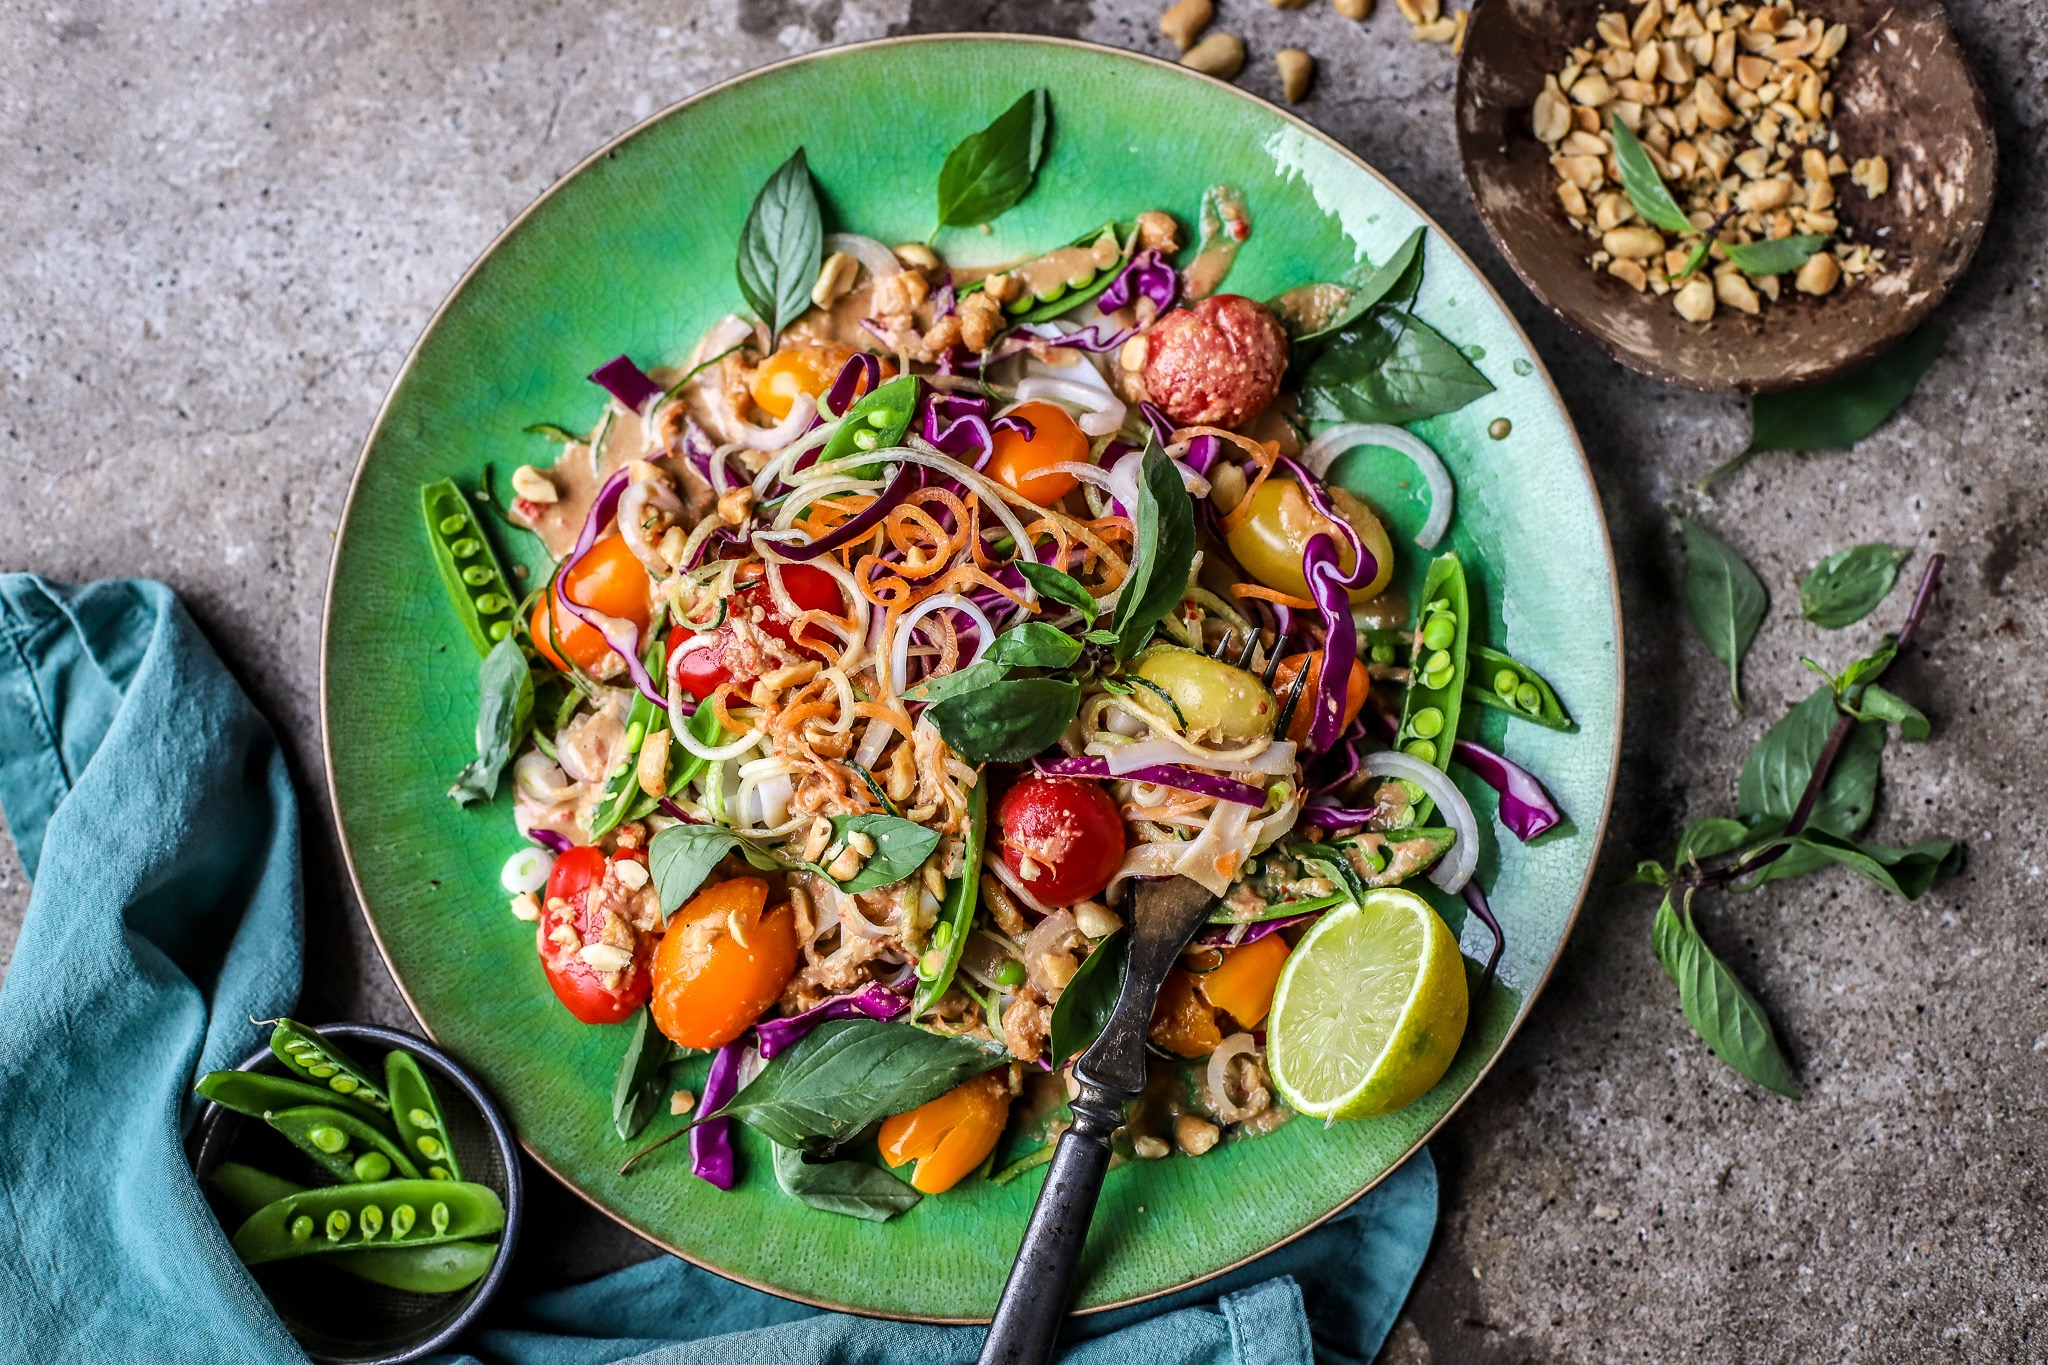 Flatlay wide view of Thai noodle salad with colourful veg on green plate with green napkin